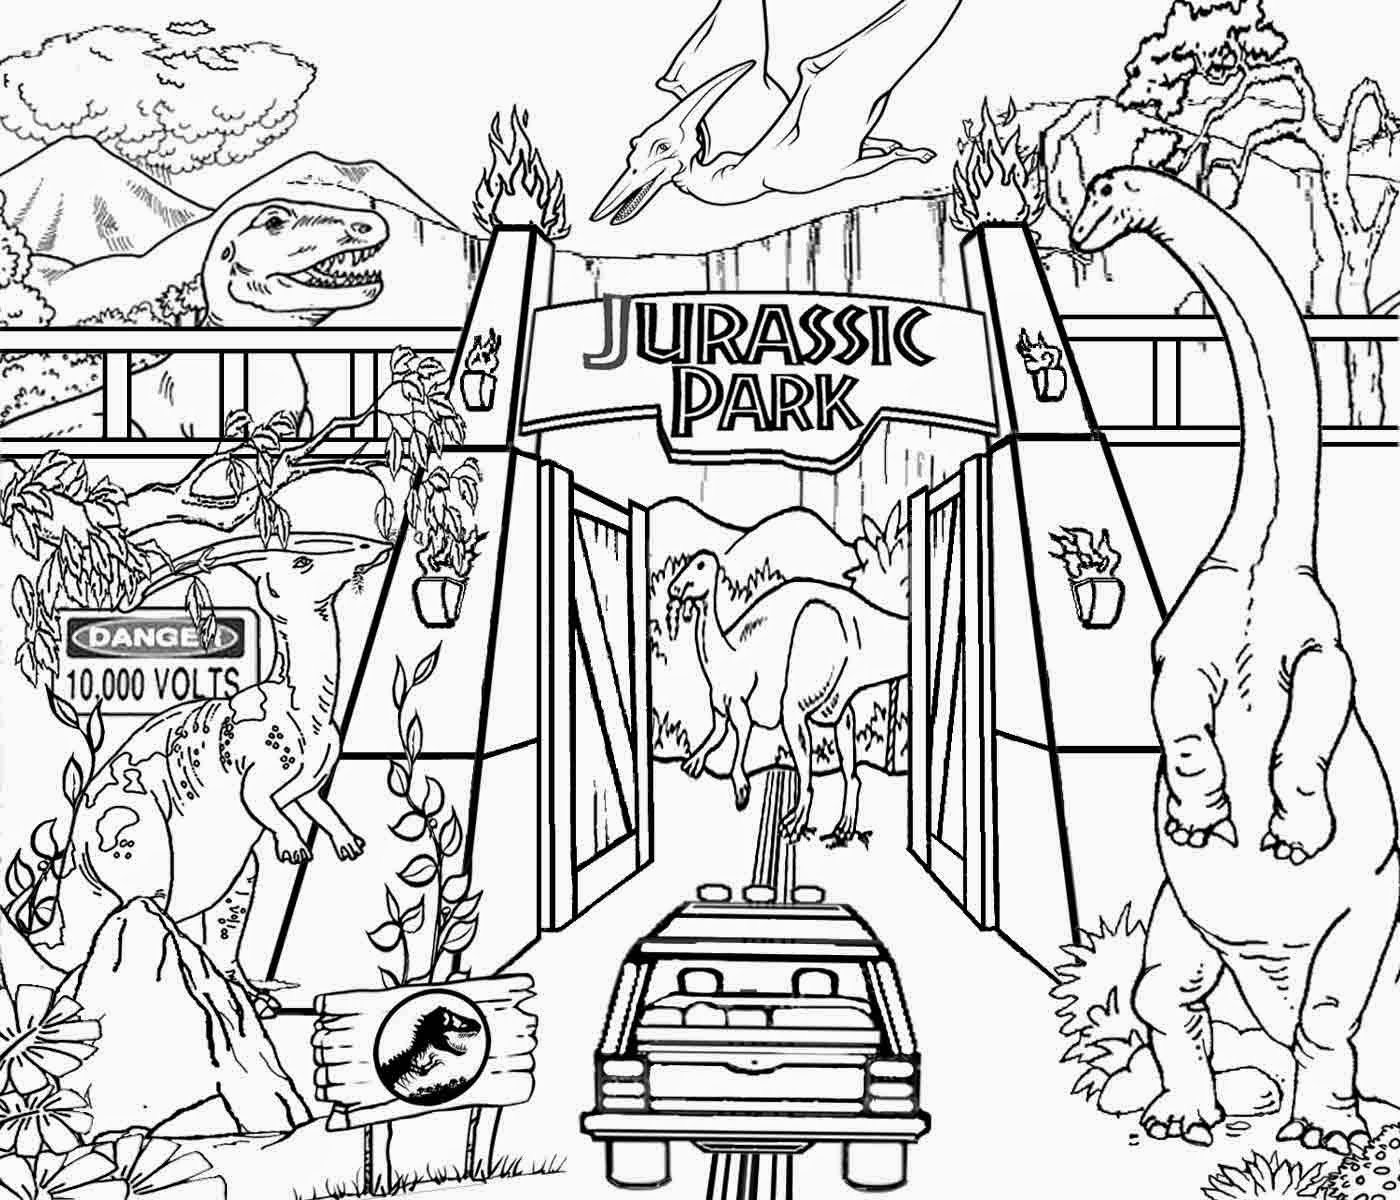 Perfect Jurassic Park Coloring Pages 83 For Line Drawings With